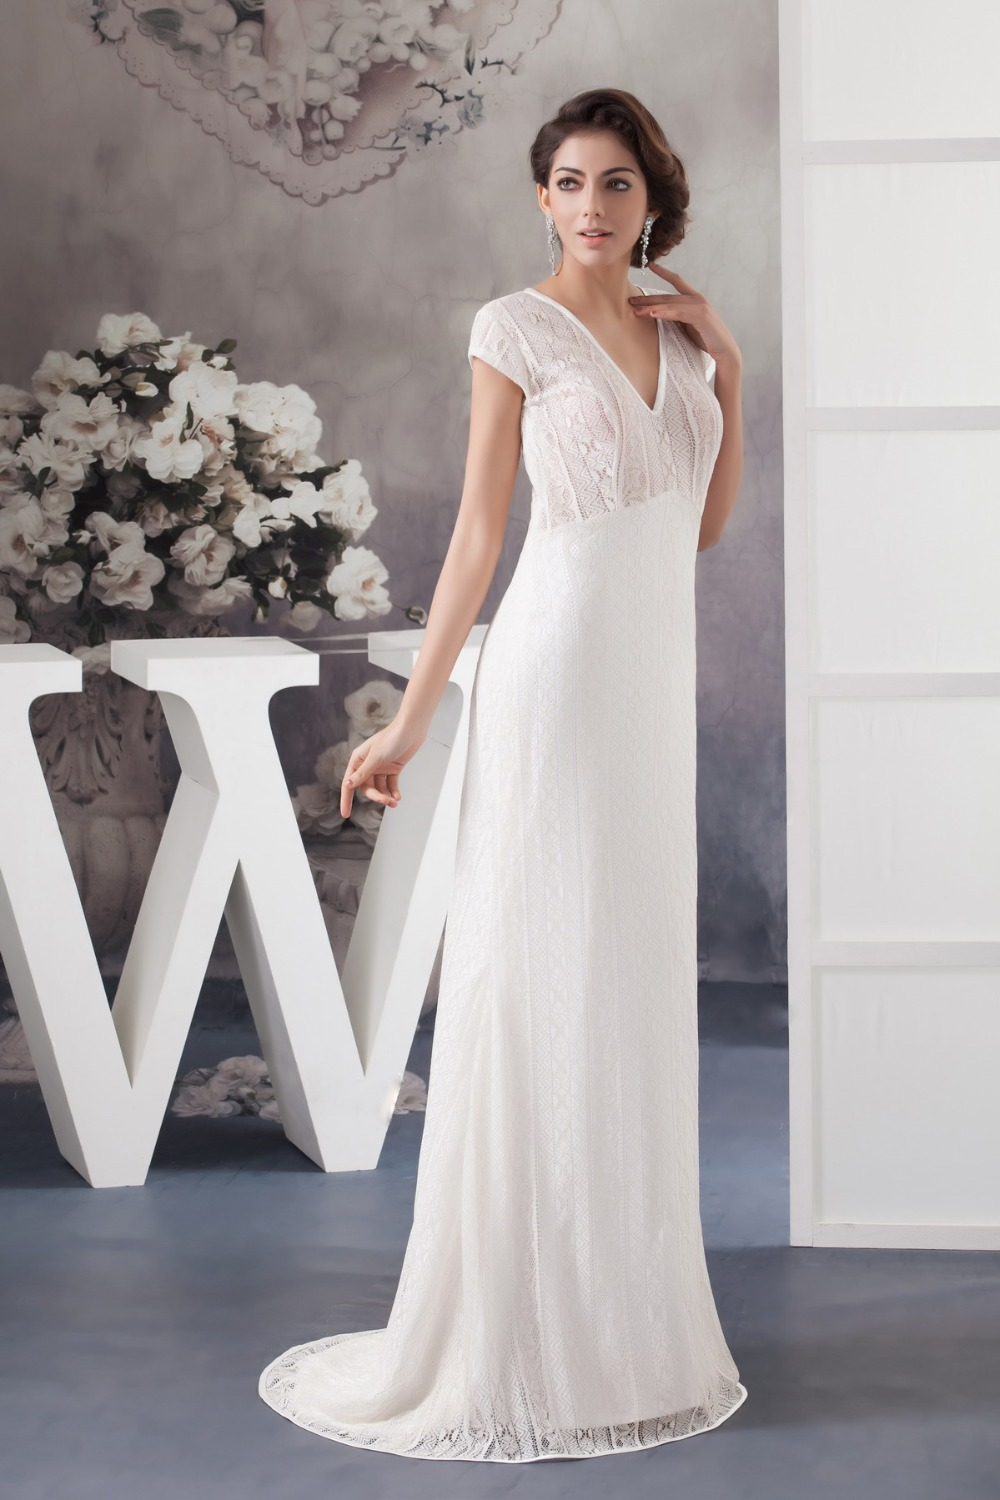 Elegant wedding dresses older brides high cut wedding for Older brides wedding dresses